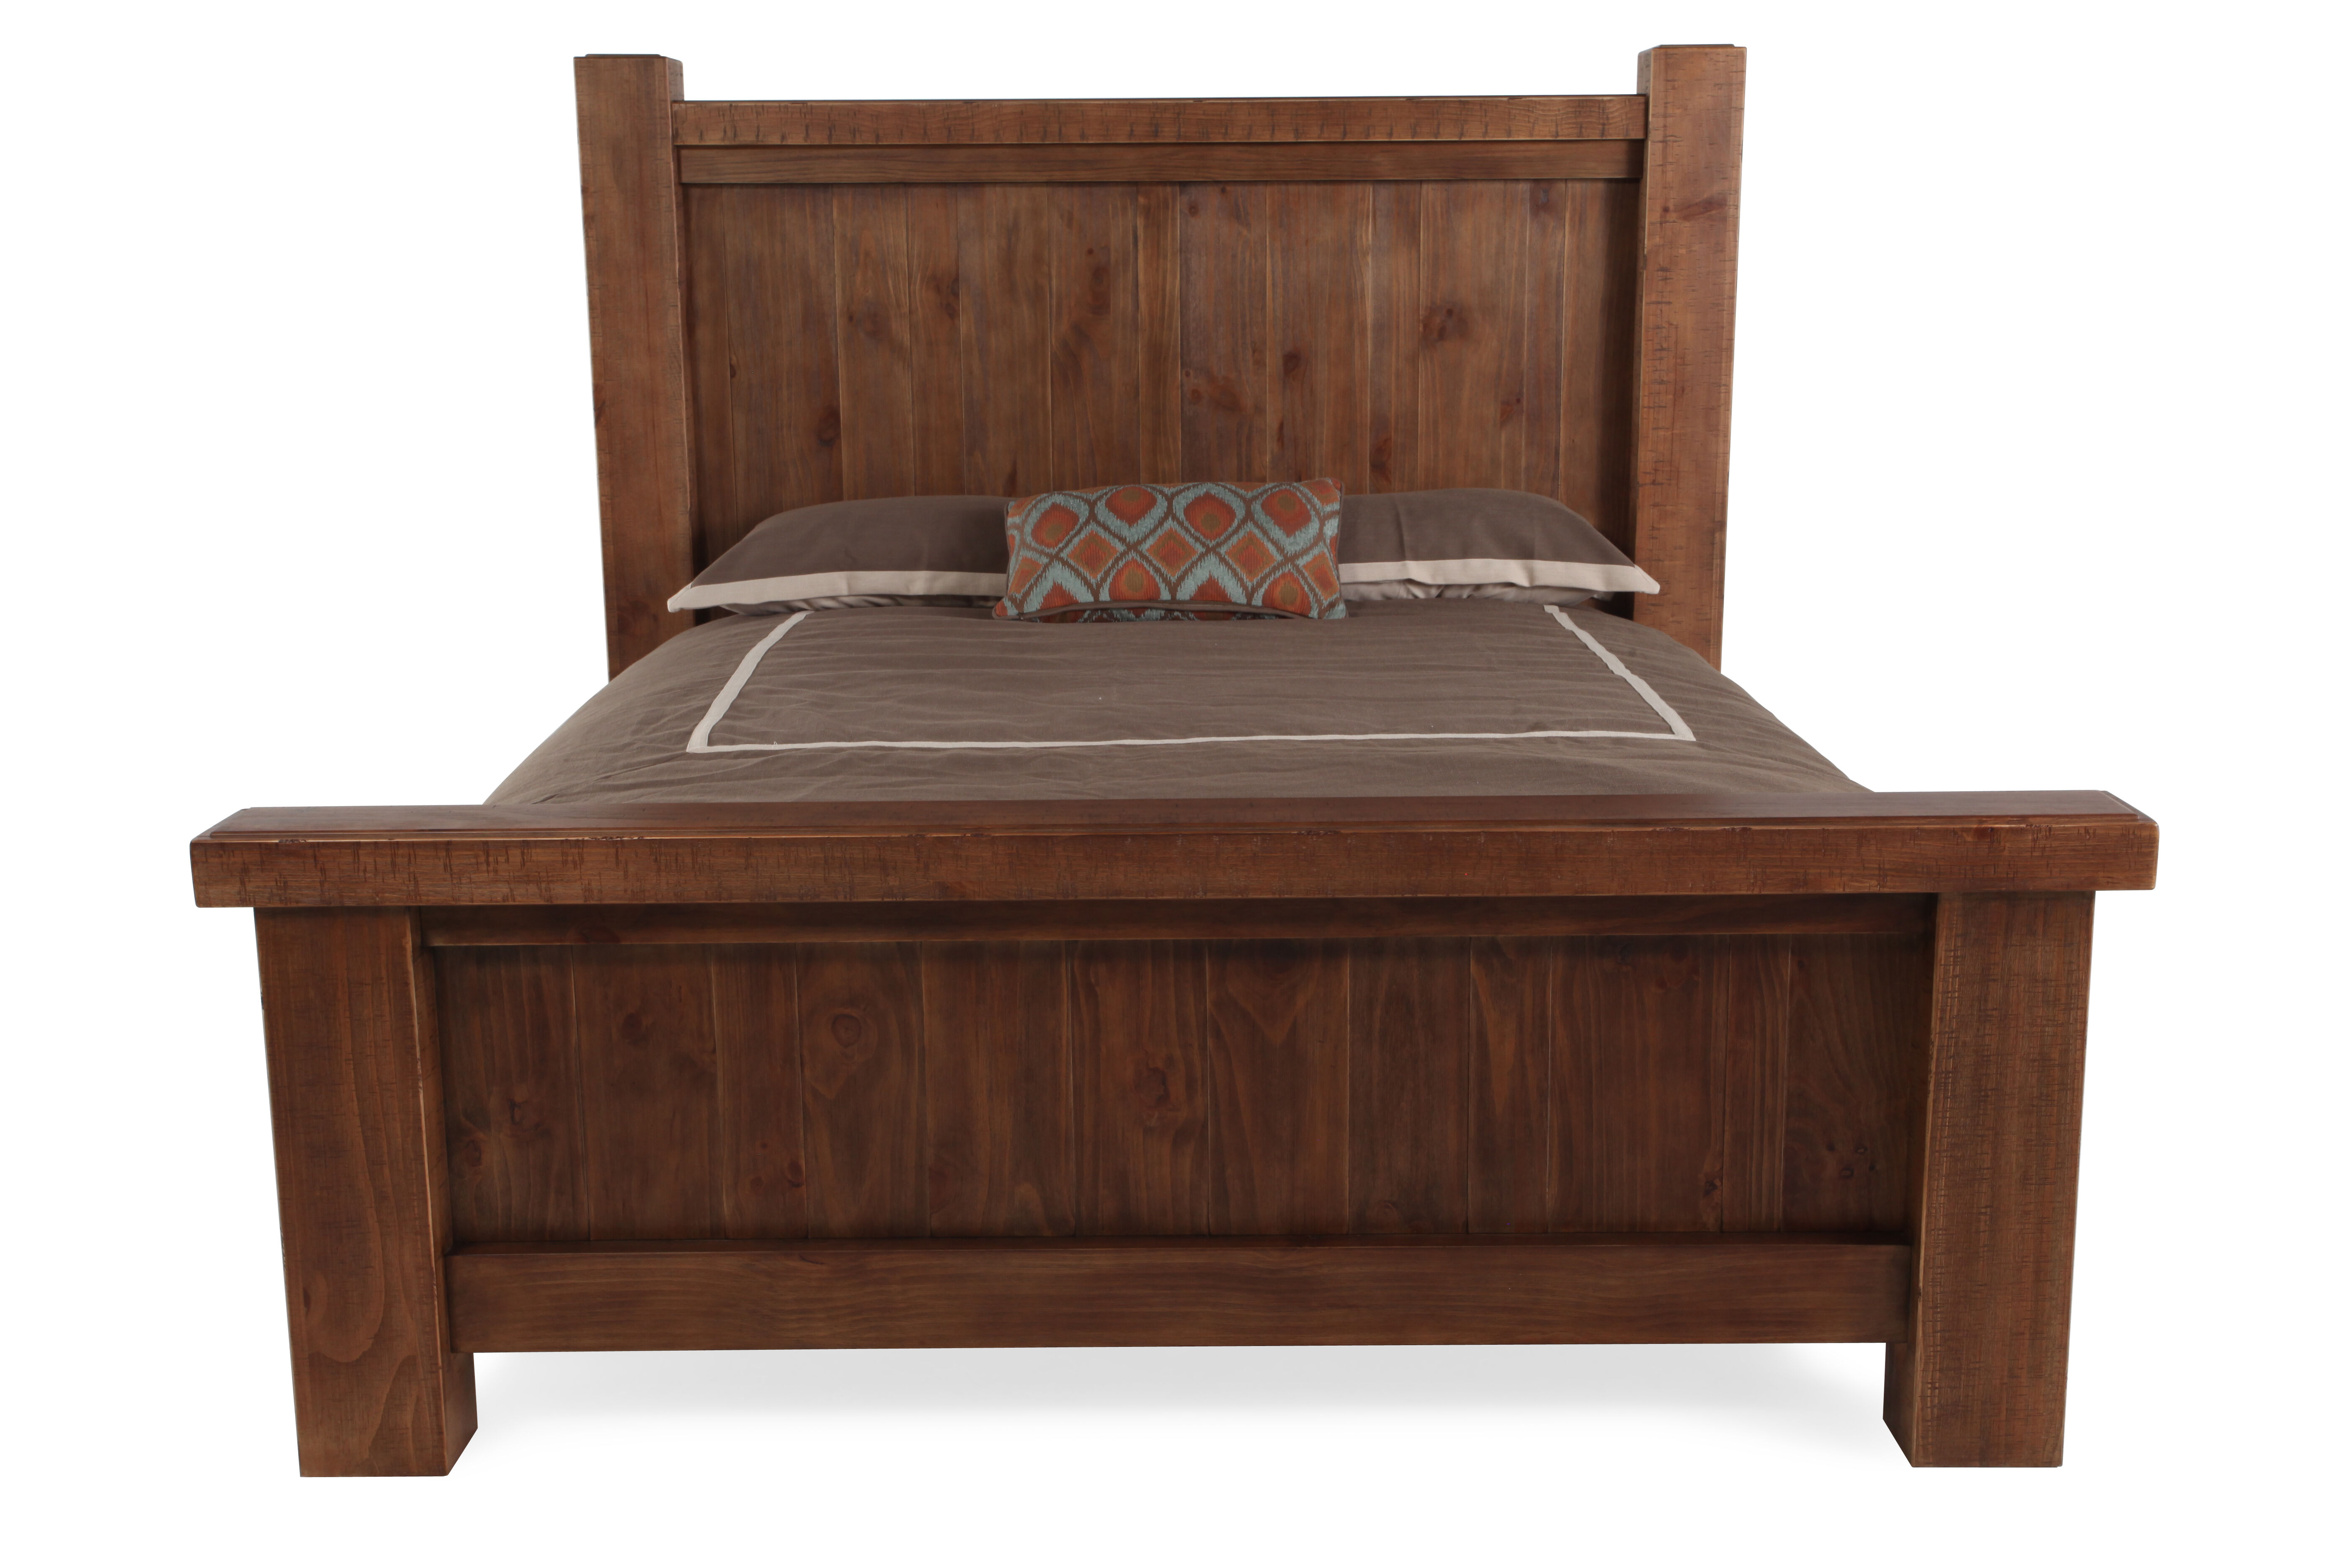 White Pine Bedroom Furniture Ashley - Year of Clean Water